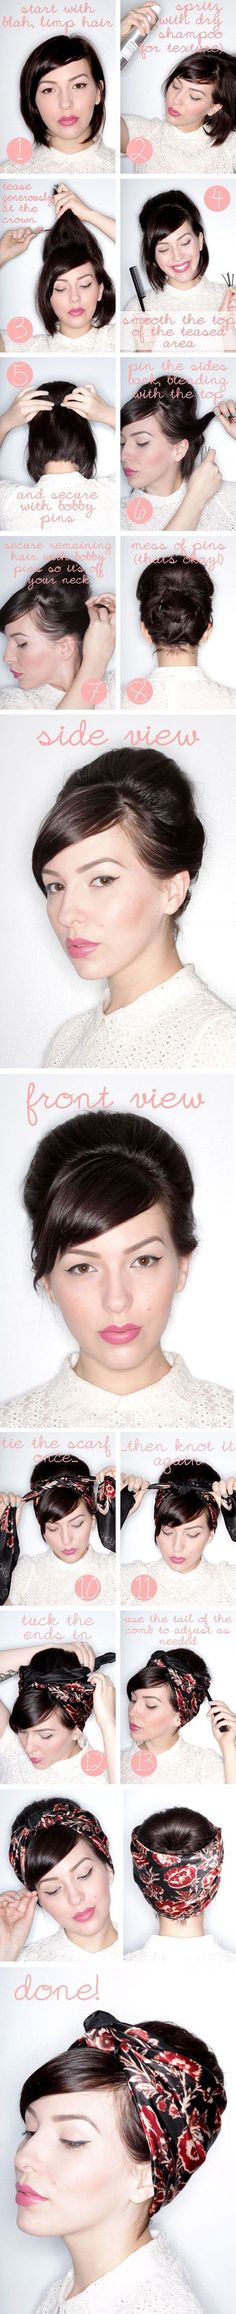 15 Cute, Easy Hairstyle Tutorials For Short Hair, Pixie Cuts | Gurl.com